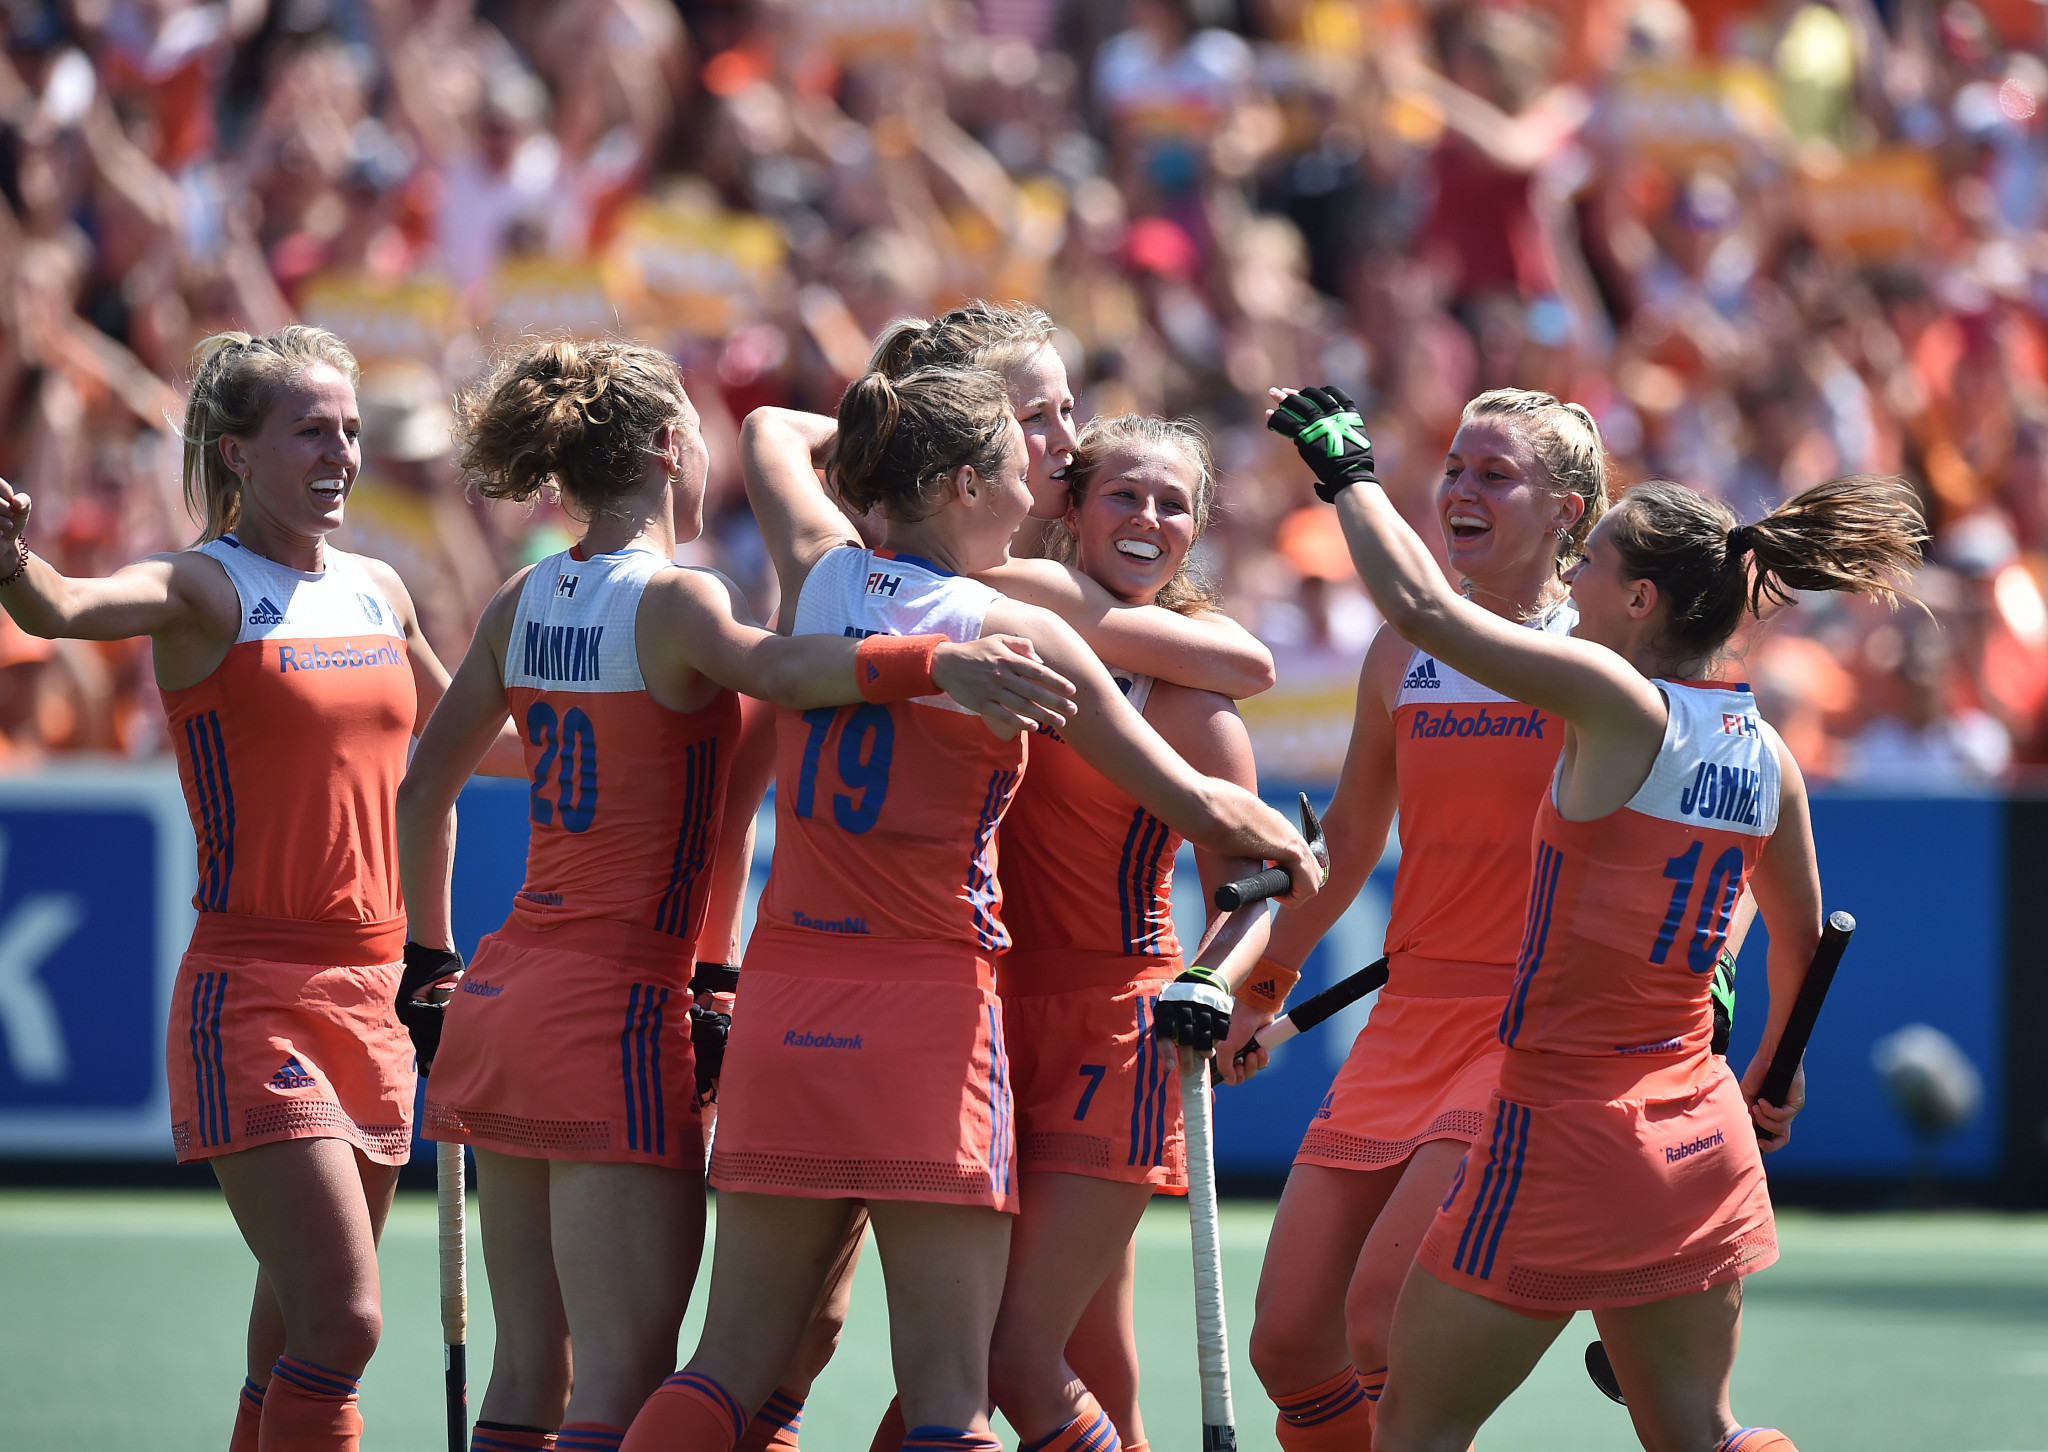 The Dutch women will take some stopping on home soil after their superb league campaign ©Getty Images